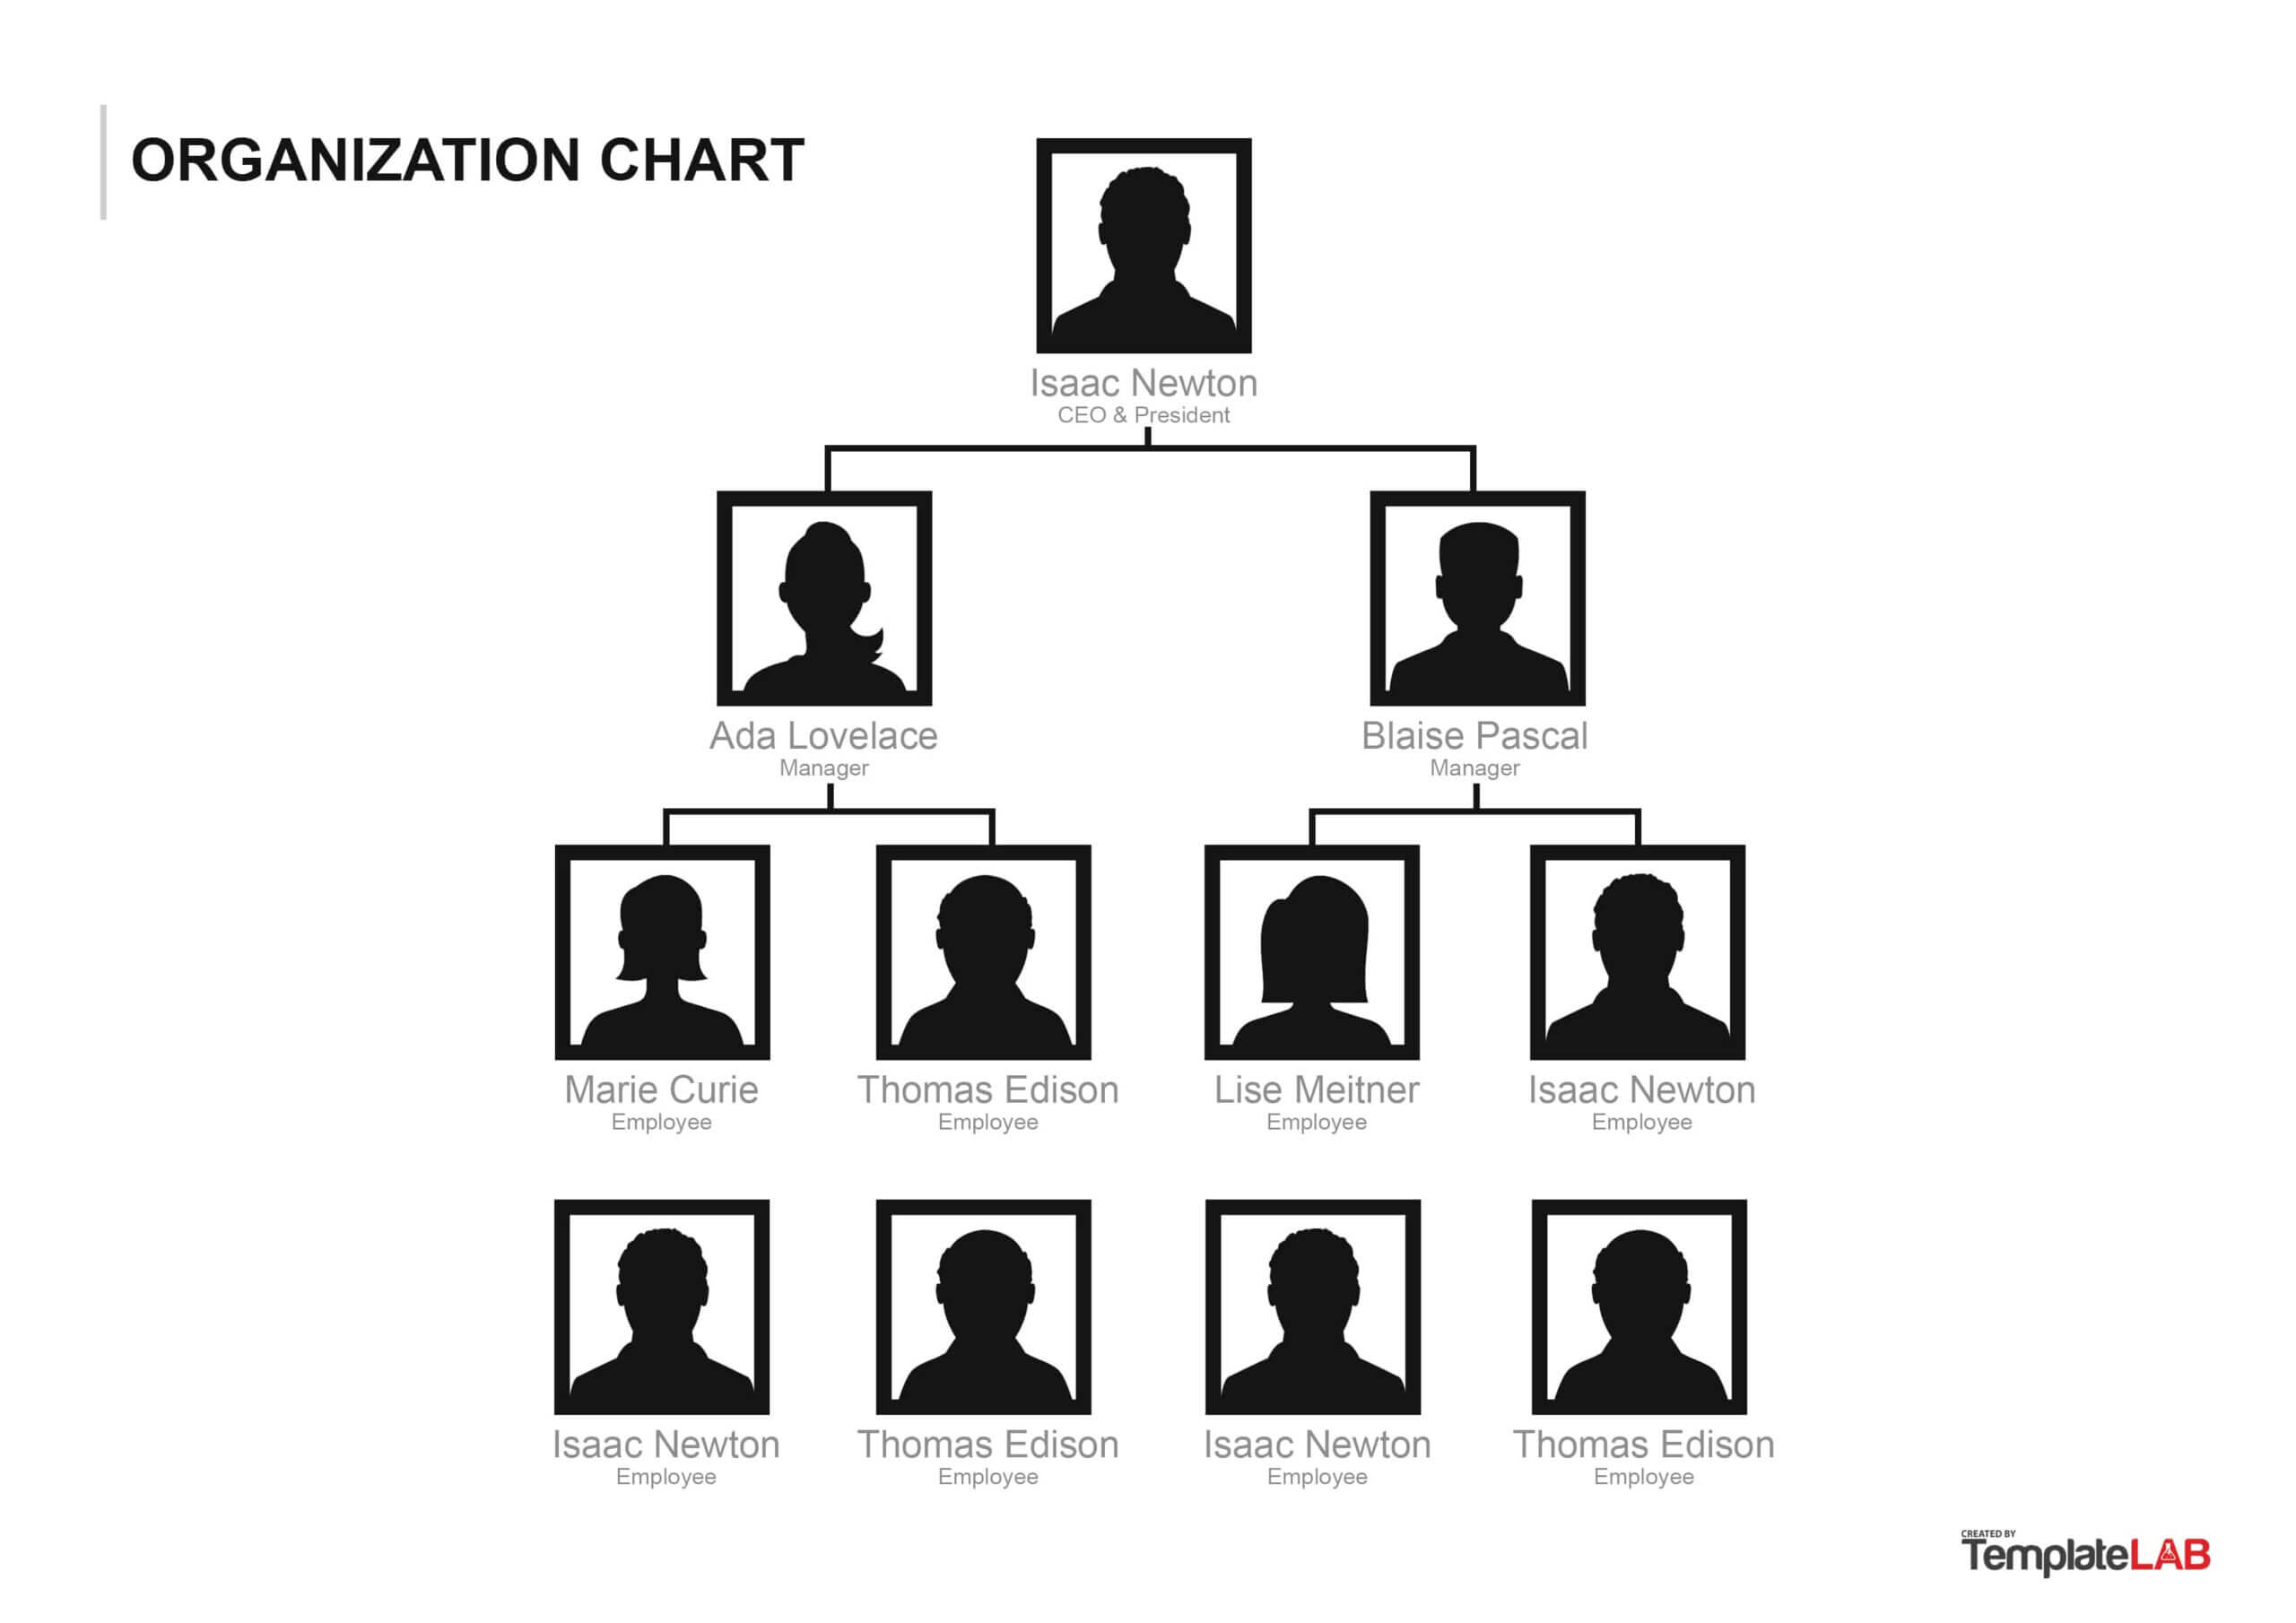 40 Organizational Chart Templates (Word, Excel, Powerpoint) With Organization Chart Template Word